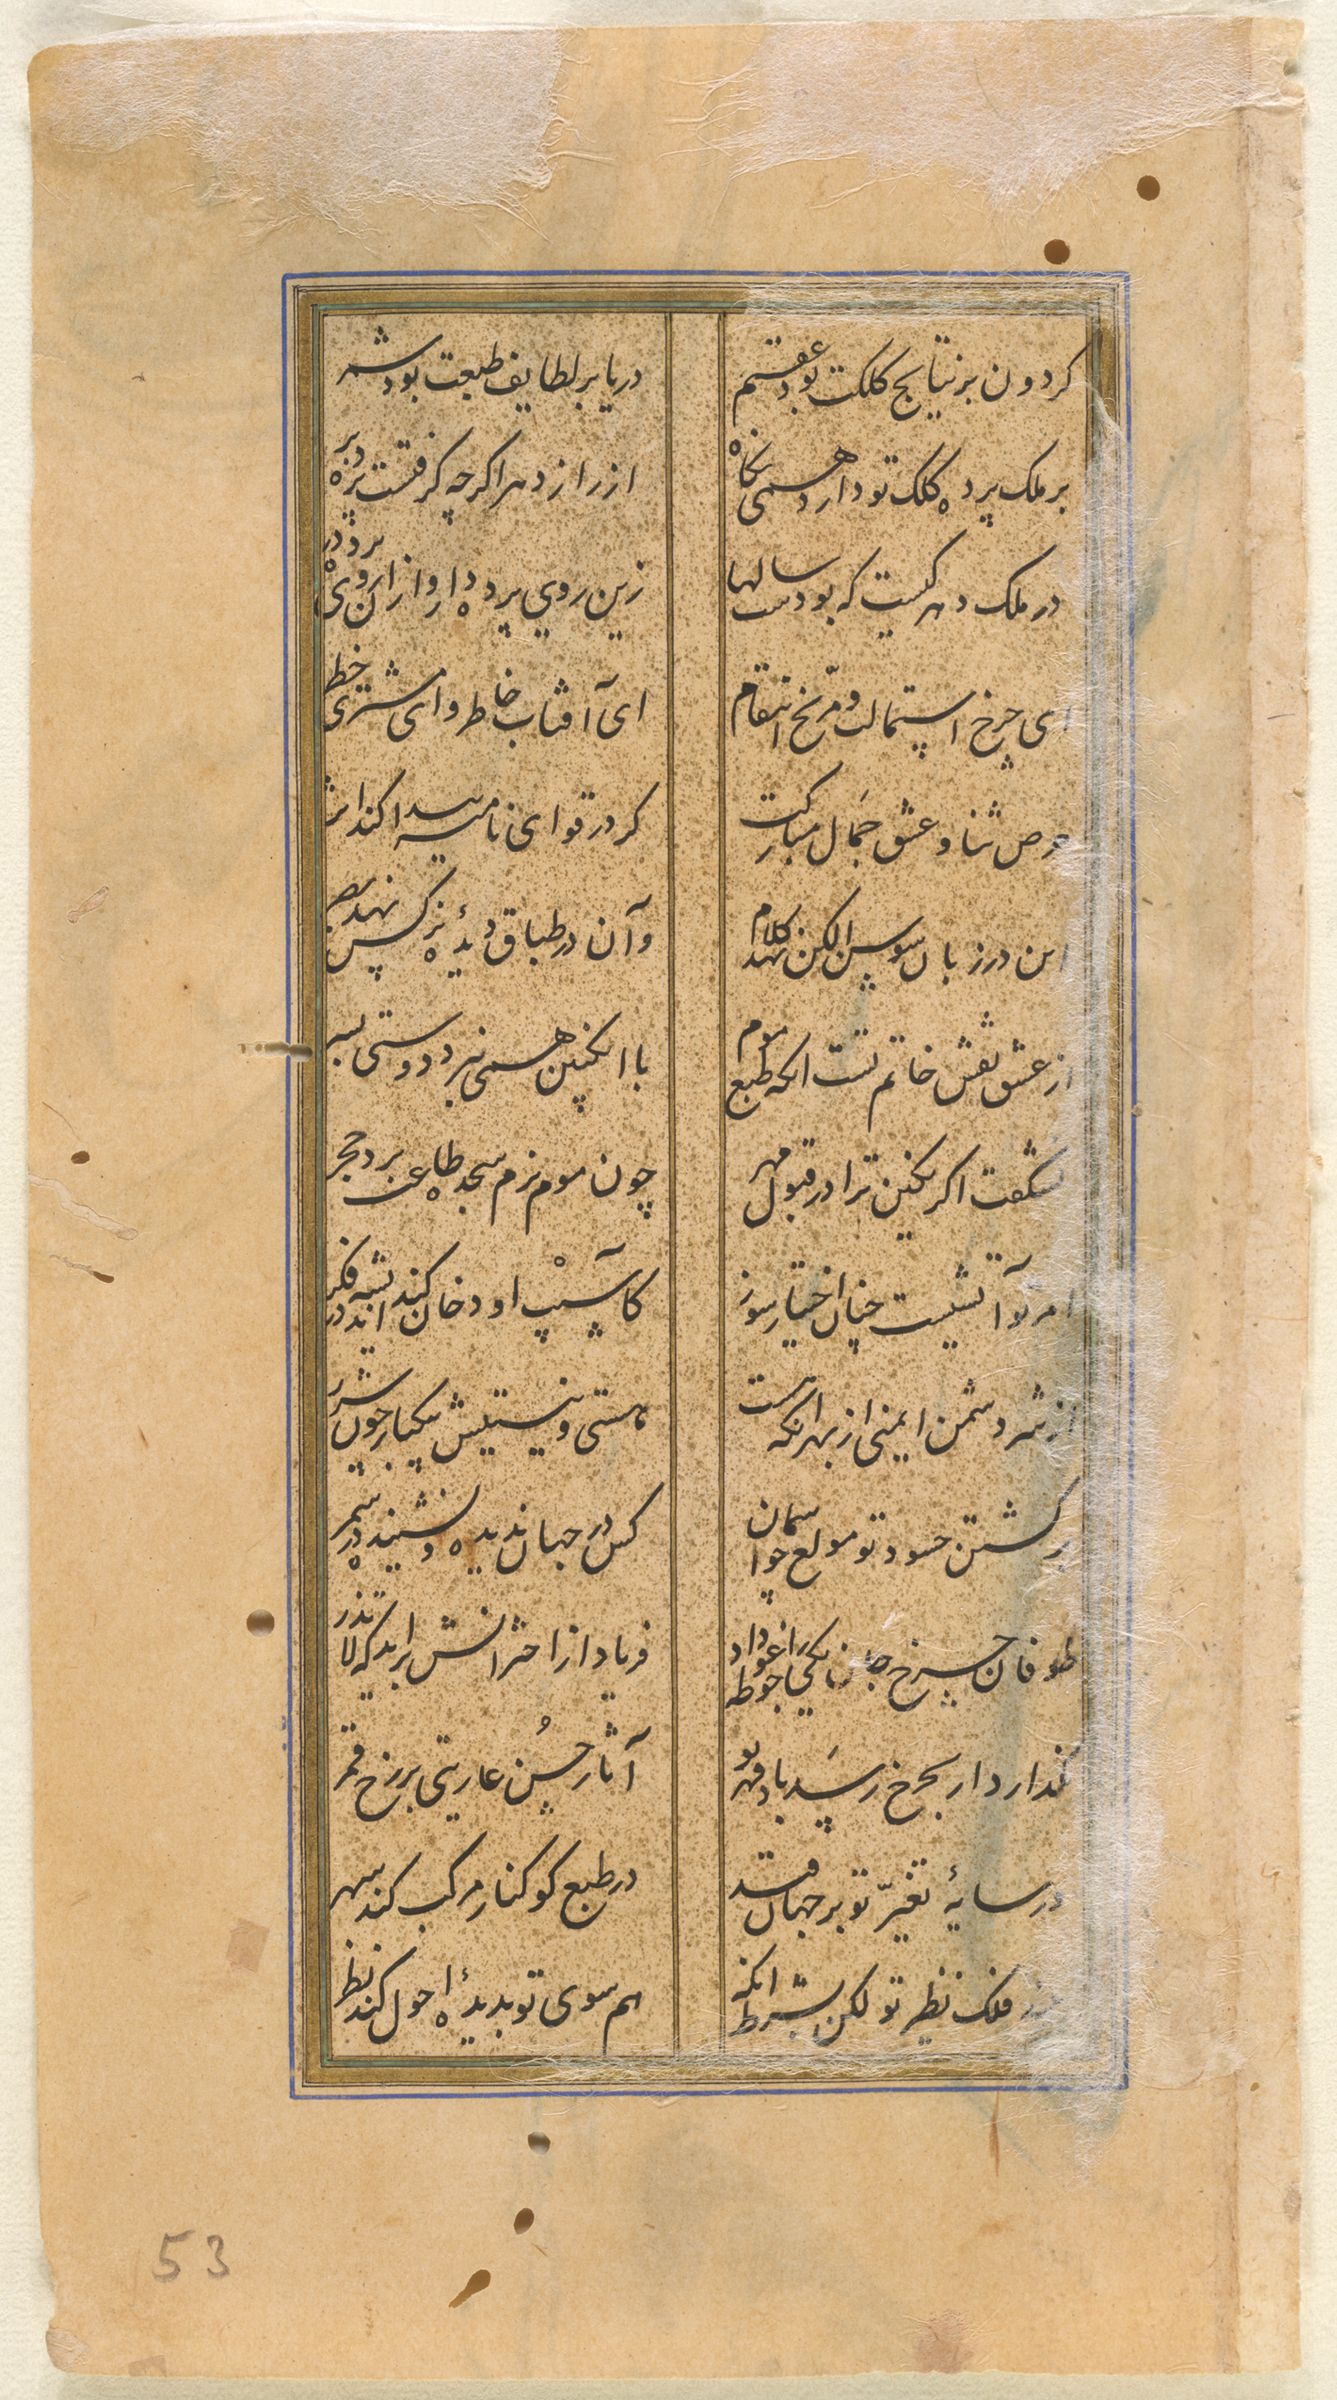 Folio 53 (Text, Recto And Verso), From A Manuscript Of The Divan (Collection Of Works) Of Anvari